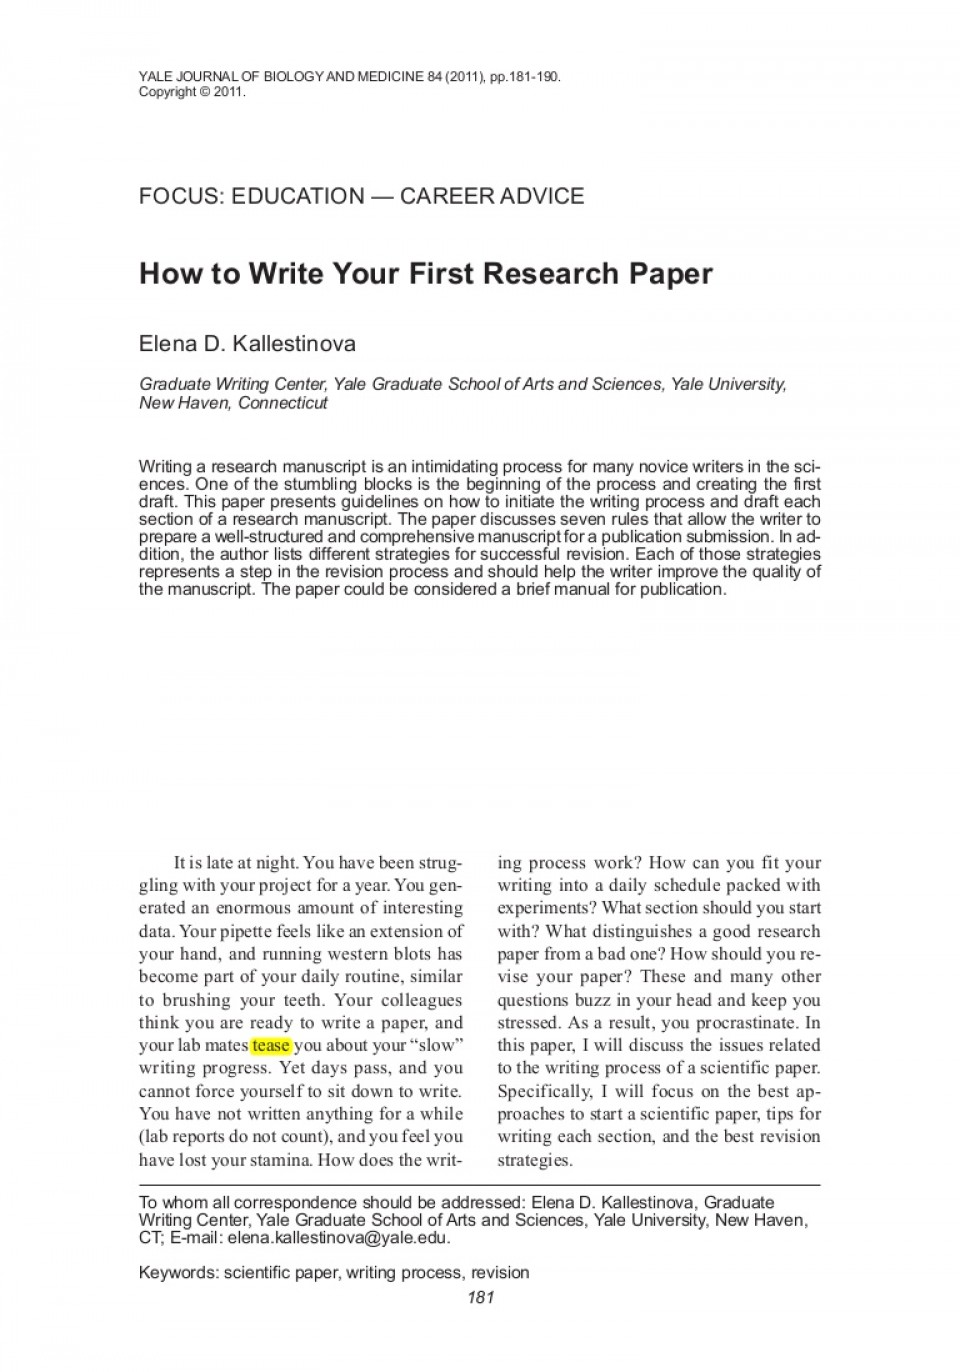 024 Research Paper Write Papers Howtowriteyourfirstresearchpaper Lva1 App6891 Thumbnail Frightening How To A History Introduction Can Someone My For Me Online 960